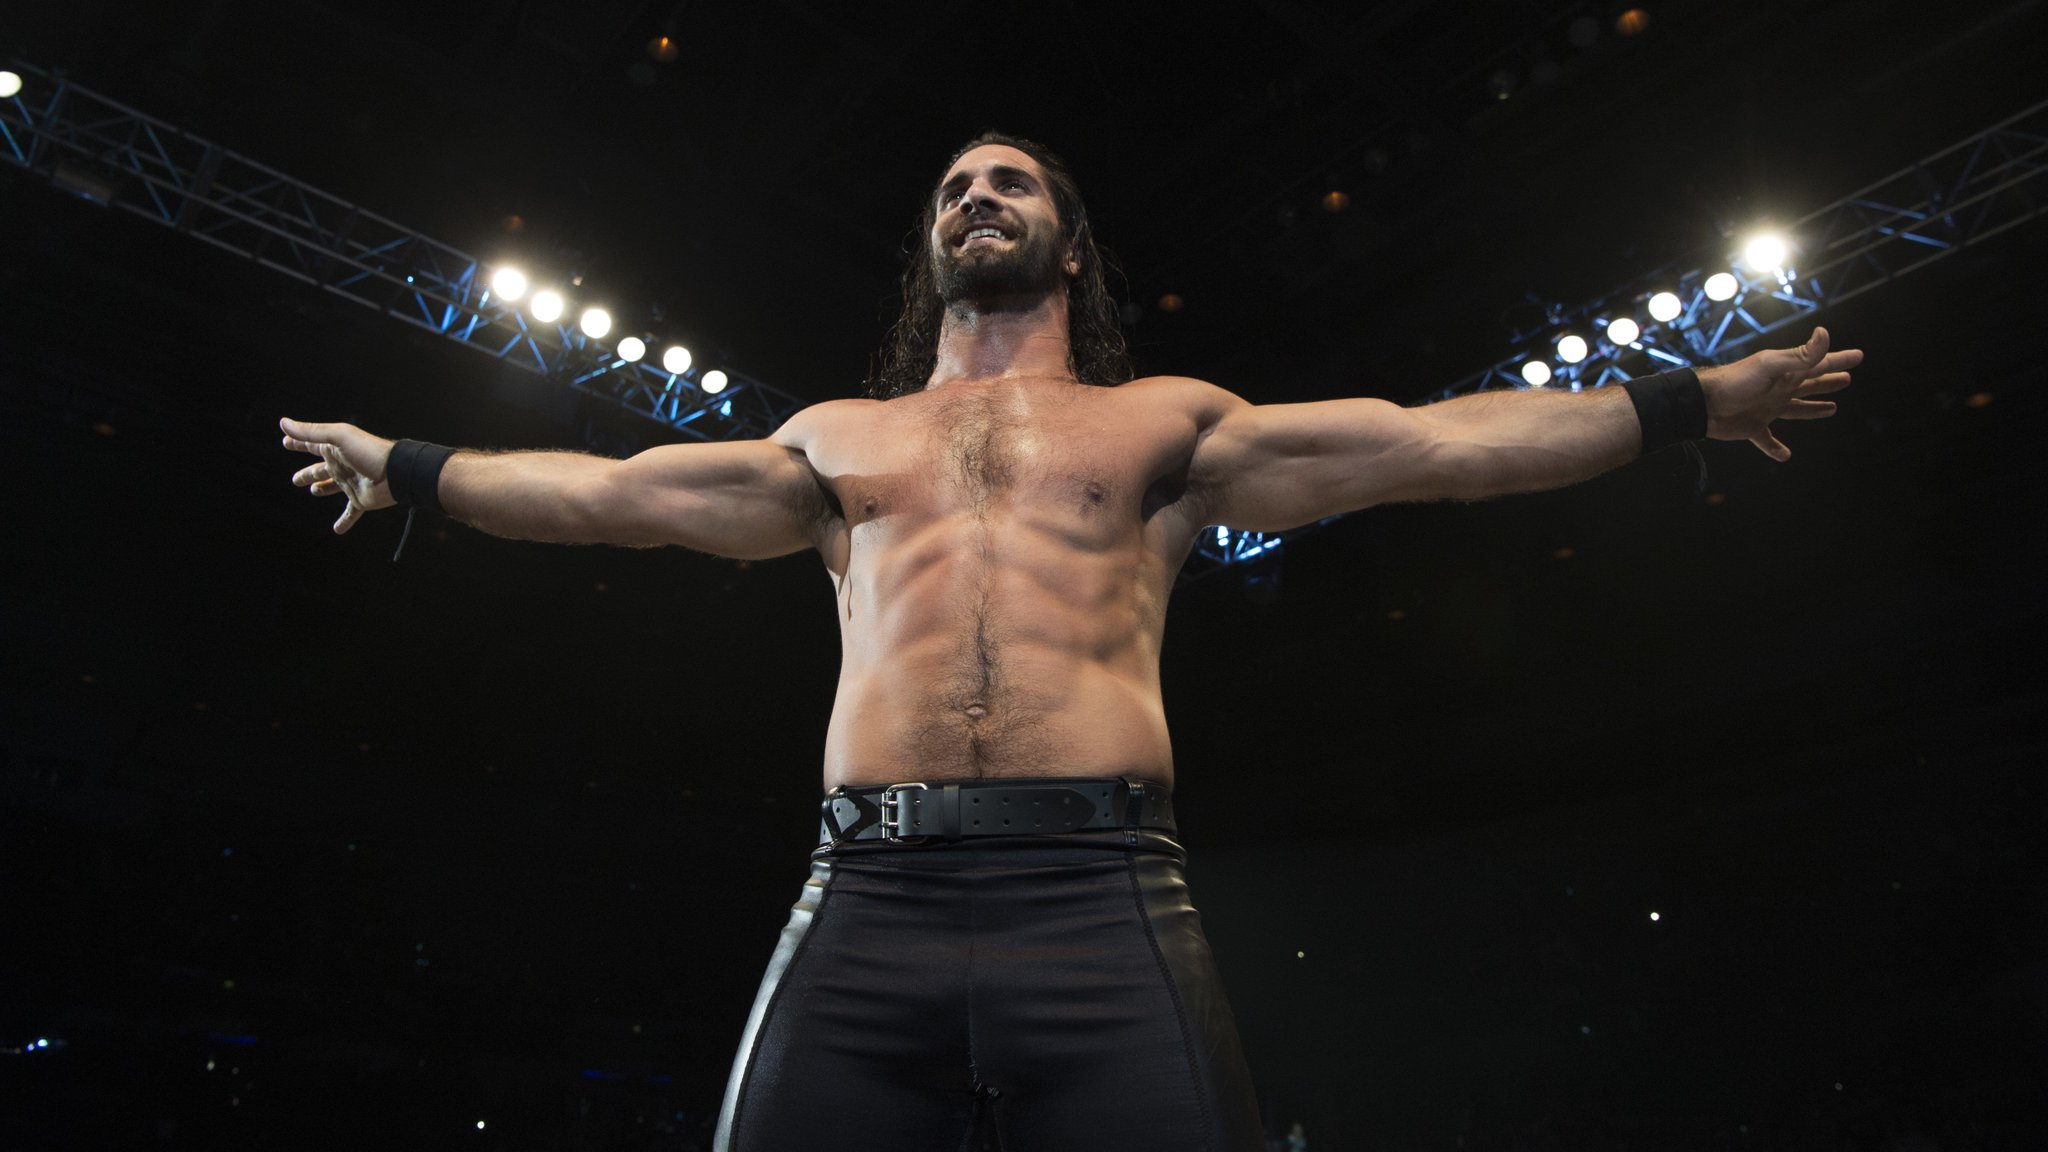 The real-life diet of Seth Rollins (@WWERollins), wrestling star and CrossFit Jesus https://t.co/XCJqsFUqMD https://t.co/Tpa2SPd2qc